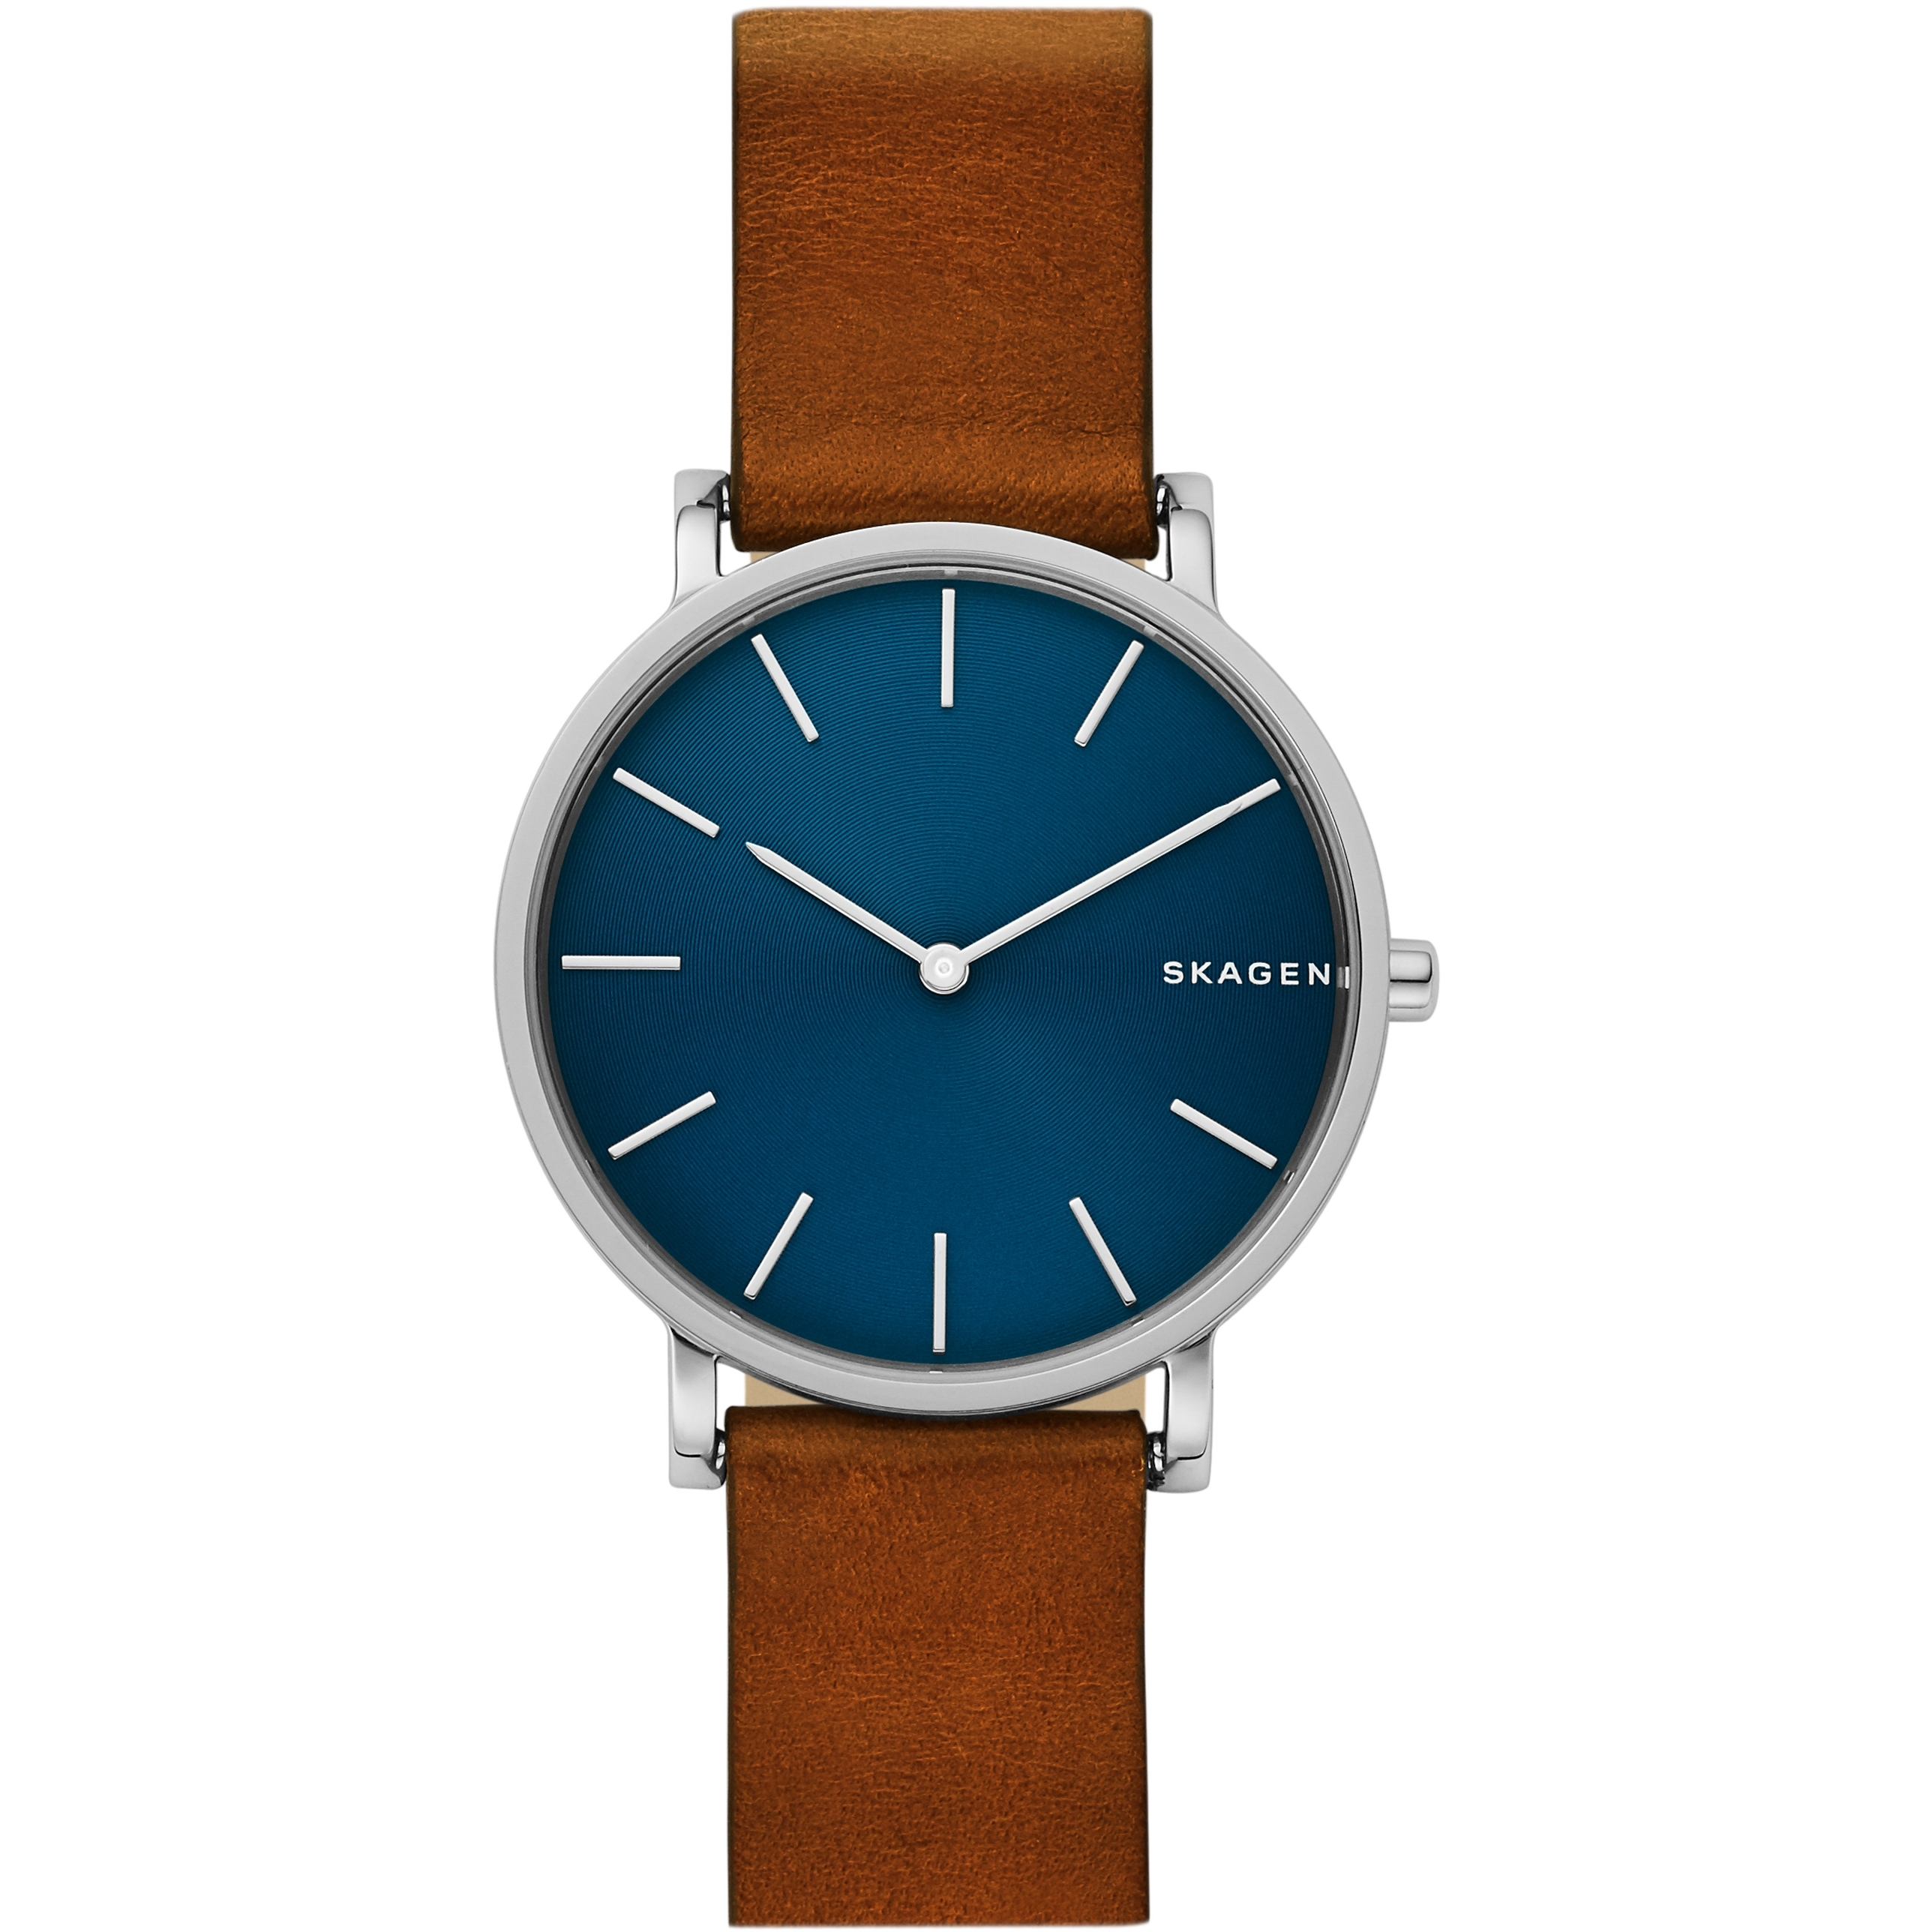 skagen clocks pinterest pin multifunction leather k watch watches r hagen